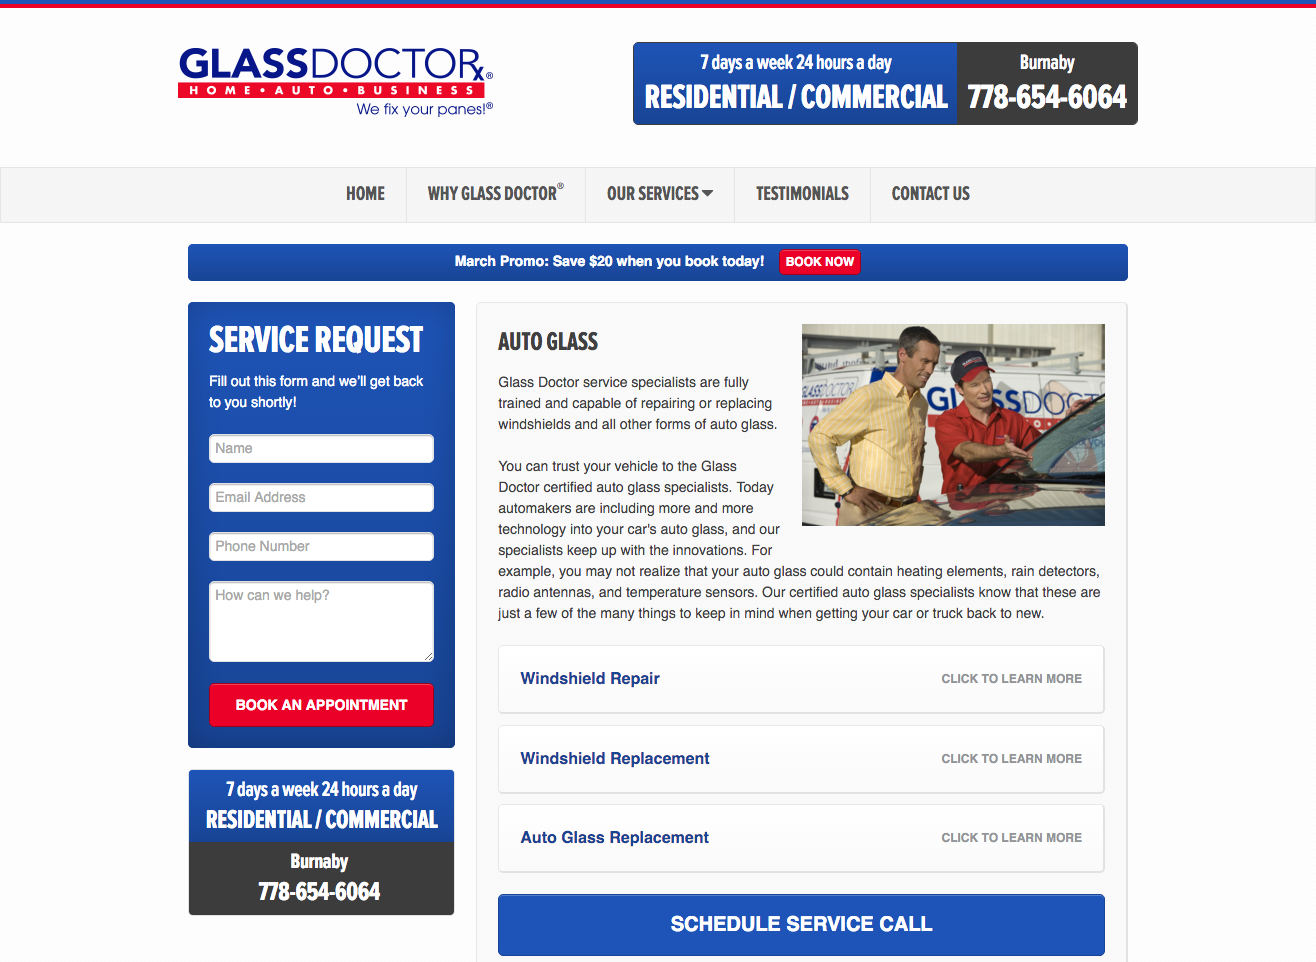 glass doctor landing page